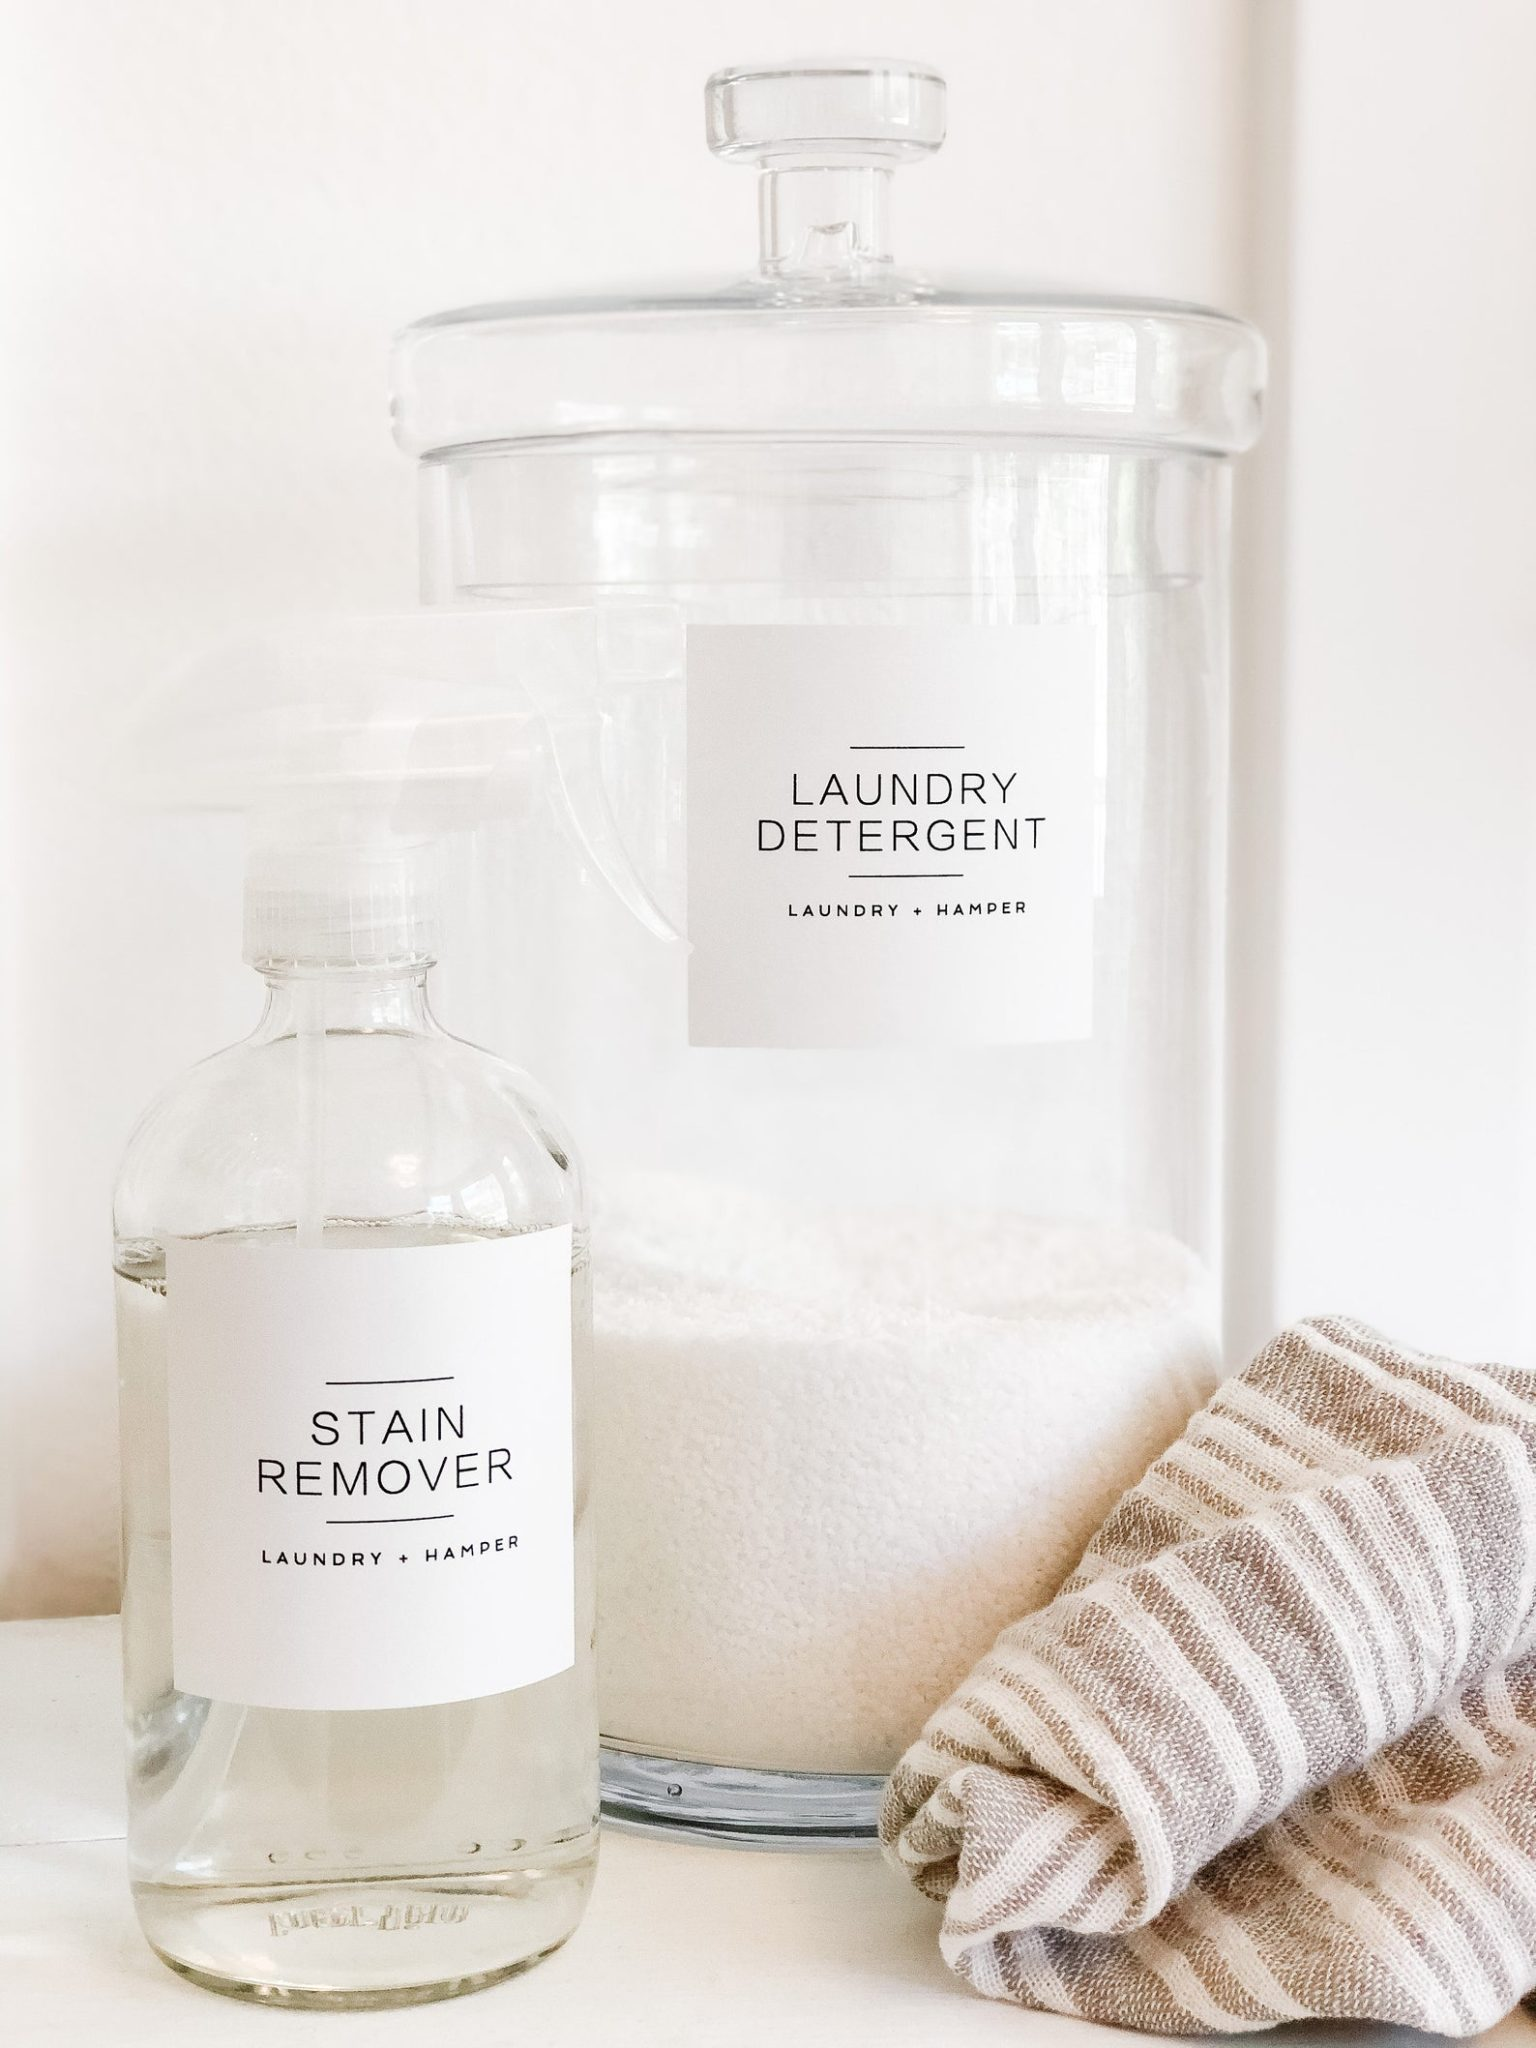 Modern Minimalist Laundry Labels $7.00+